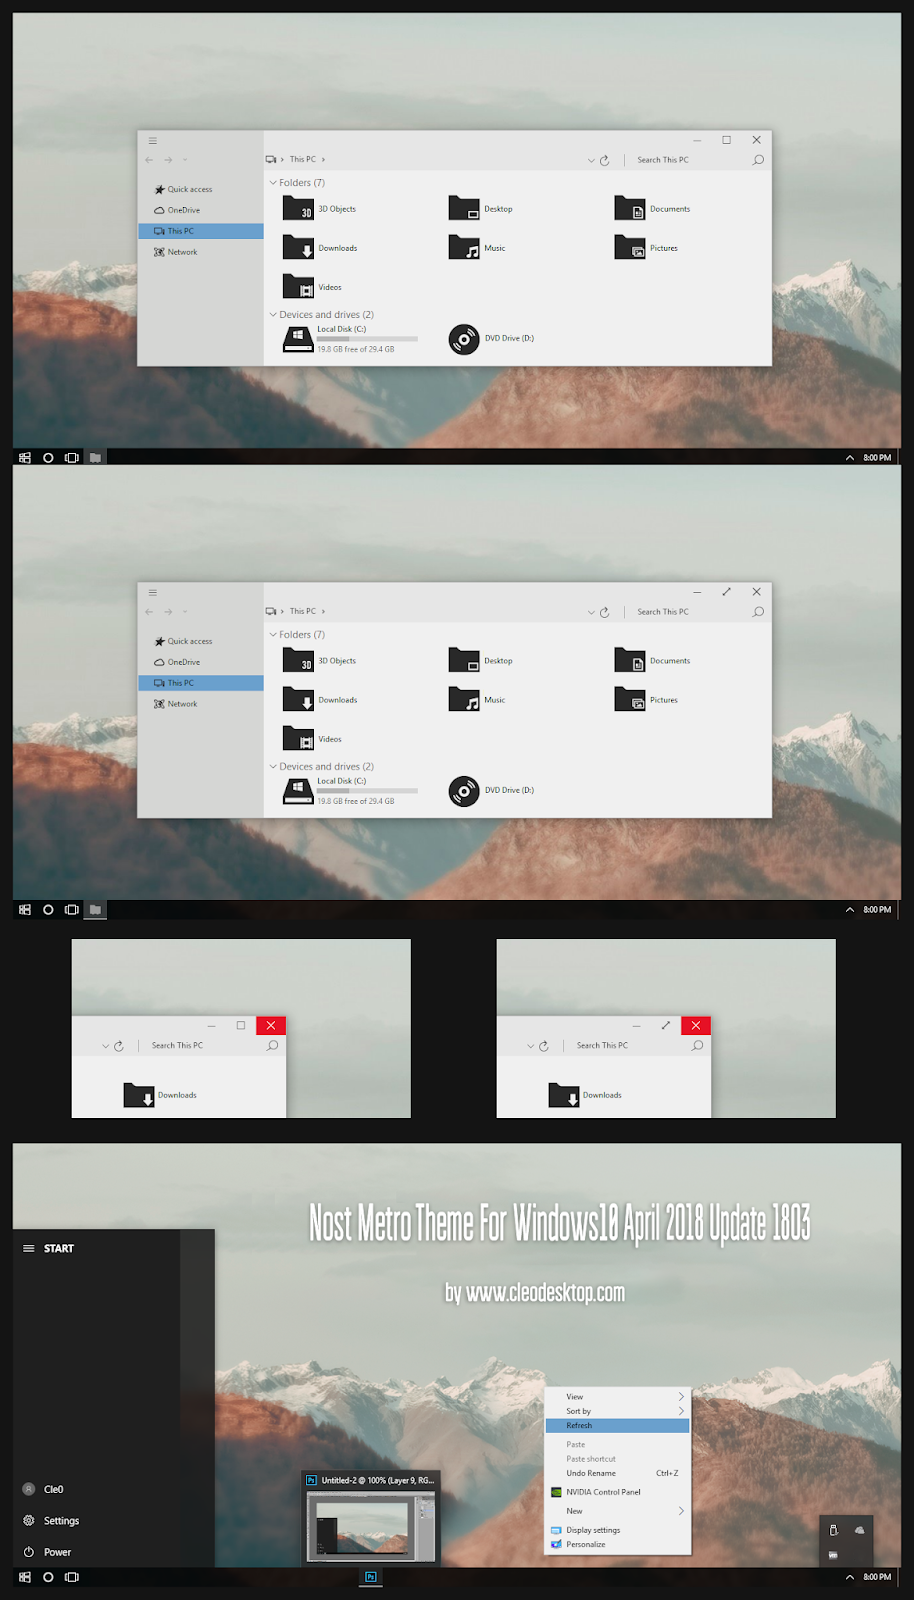 windows10 themes i cleodesktop nost metro theme windows10 april